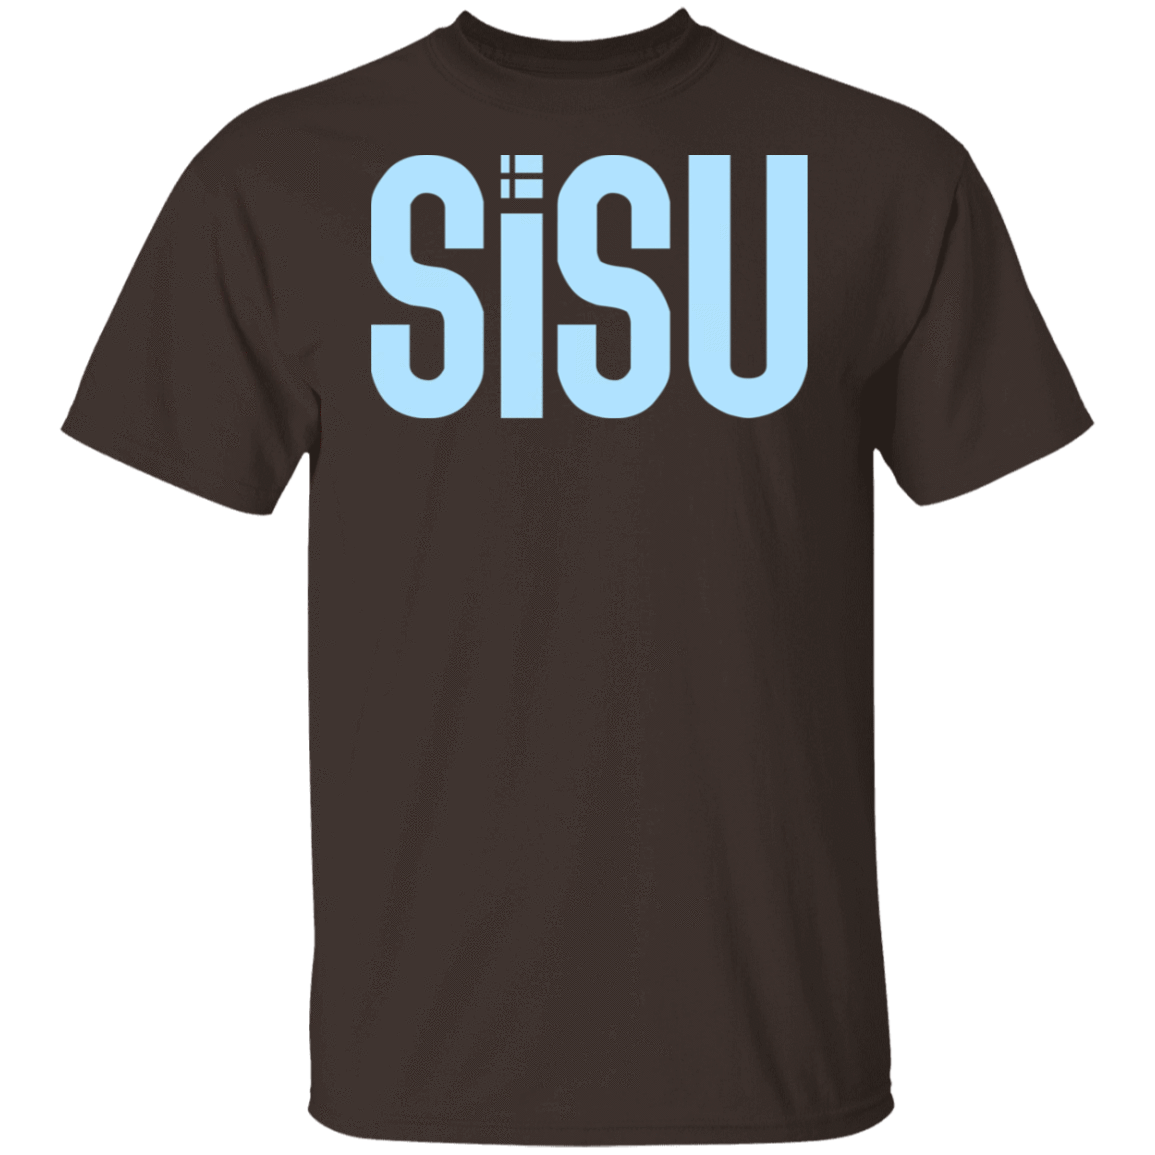 SISU Heather Navy T-Shirts, Hoodies, Tank 1049-9956-80393643-48152 - Tee Ript